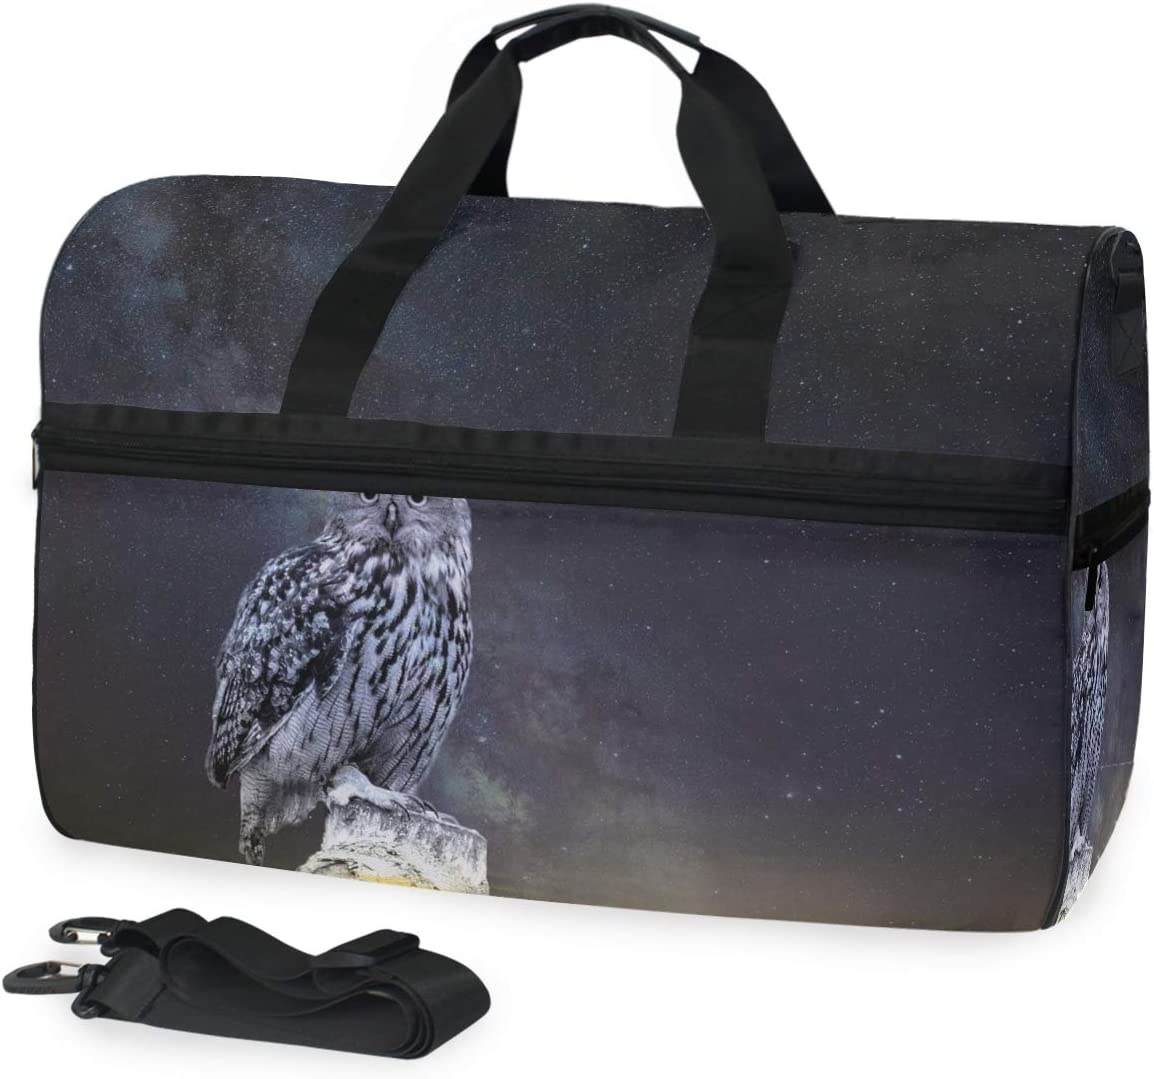 MUOOUM Galaxy Animal Owl Large Duffle Bags Sports Gym Bag with Shoes Compartment for Men and Women